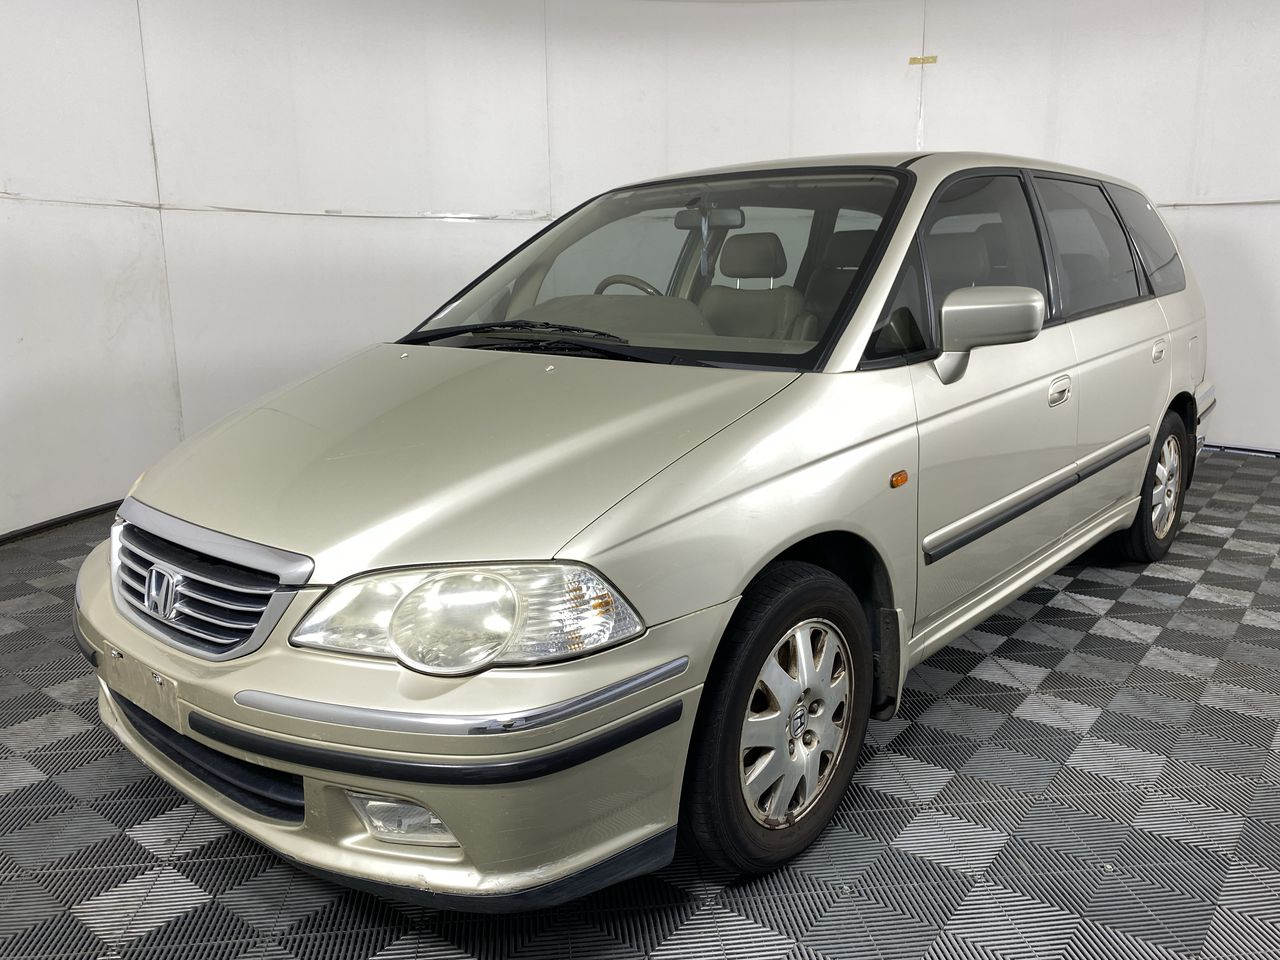 2002 Honda Odyssey V6L Automatic 7 Seat People Mover